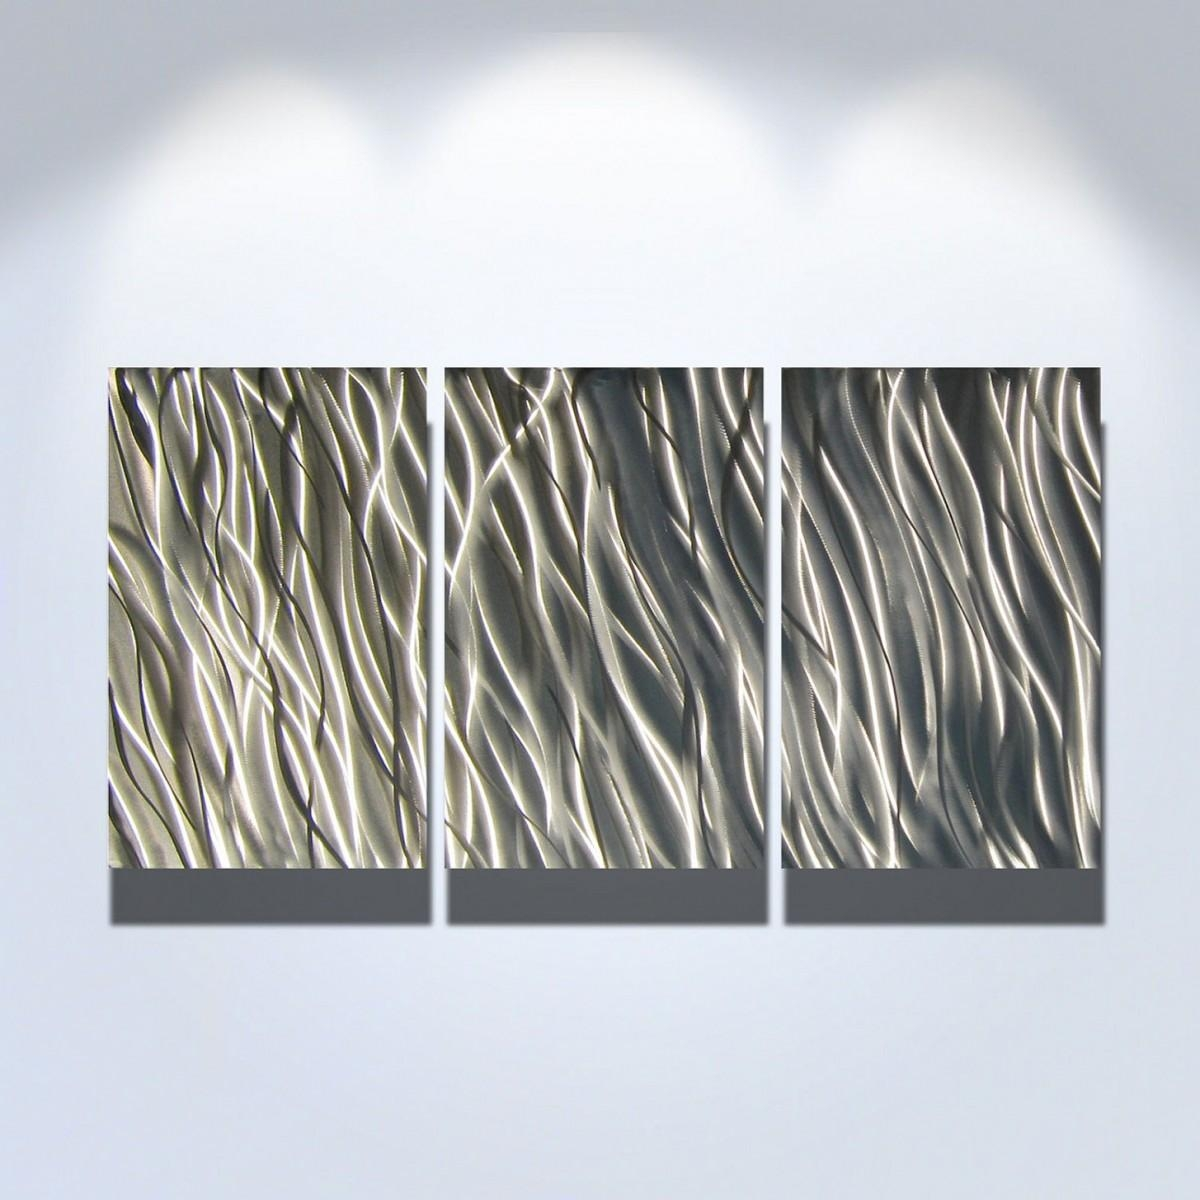 Metal Wall Art Decor As An Amazing Focal Point Inside Classy Wall Art (Image 18 of 20)